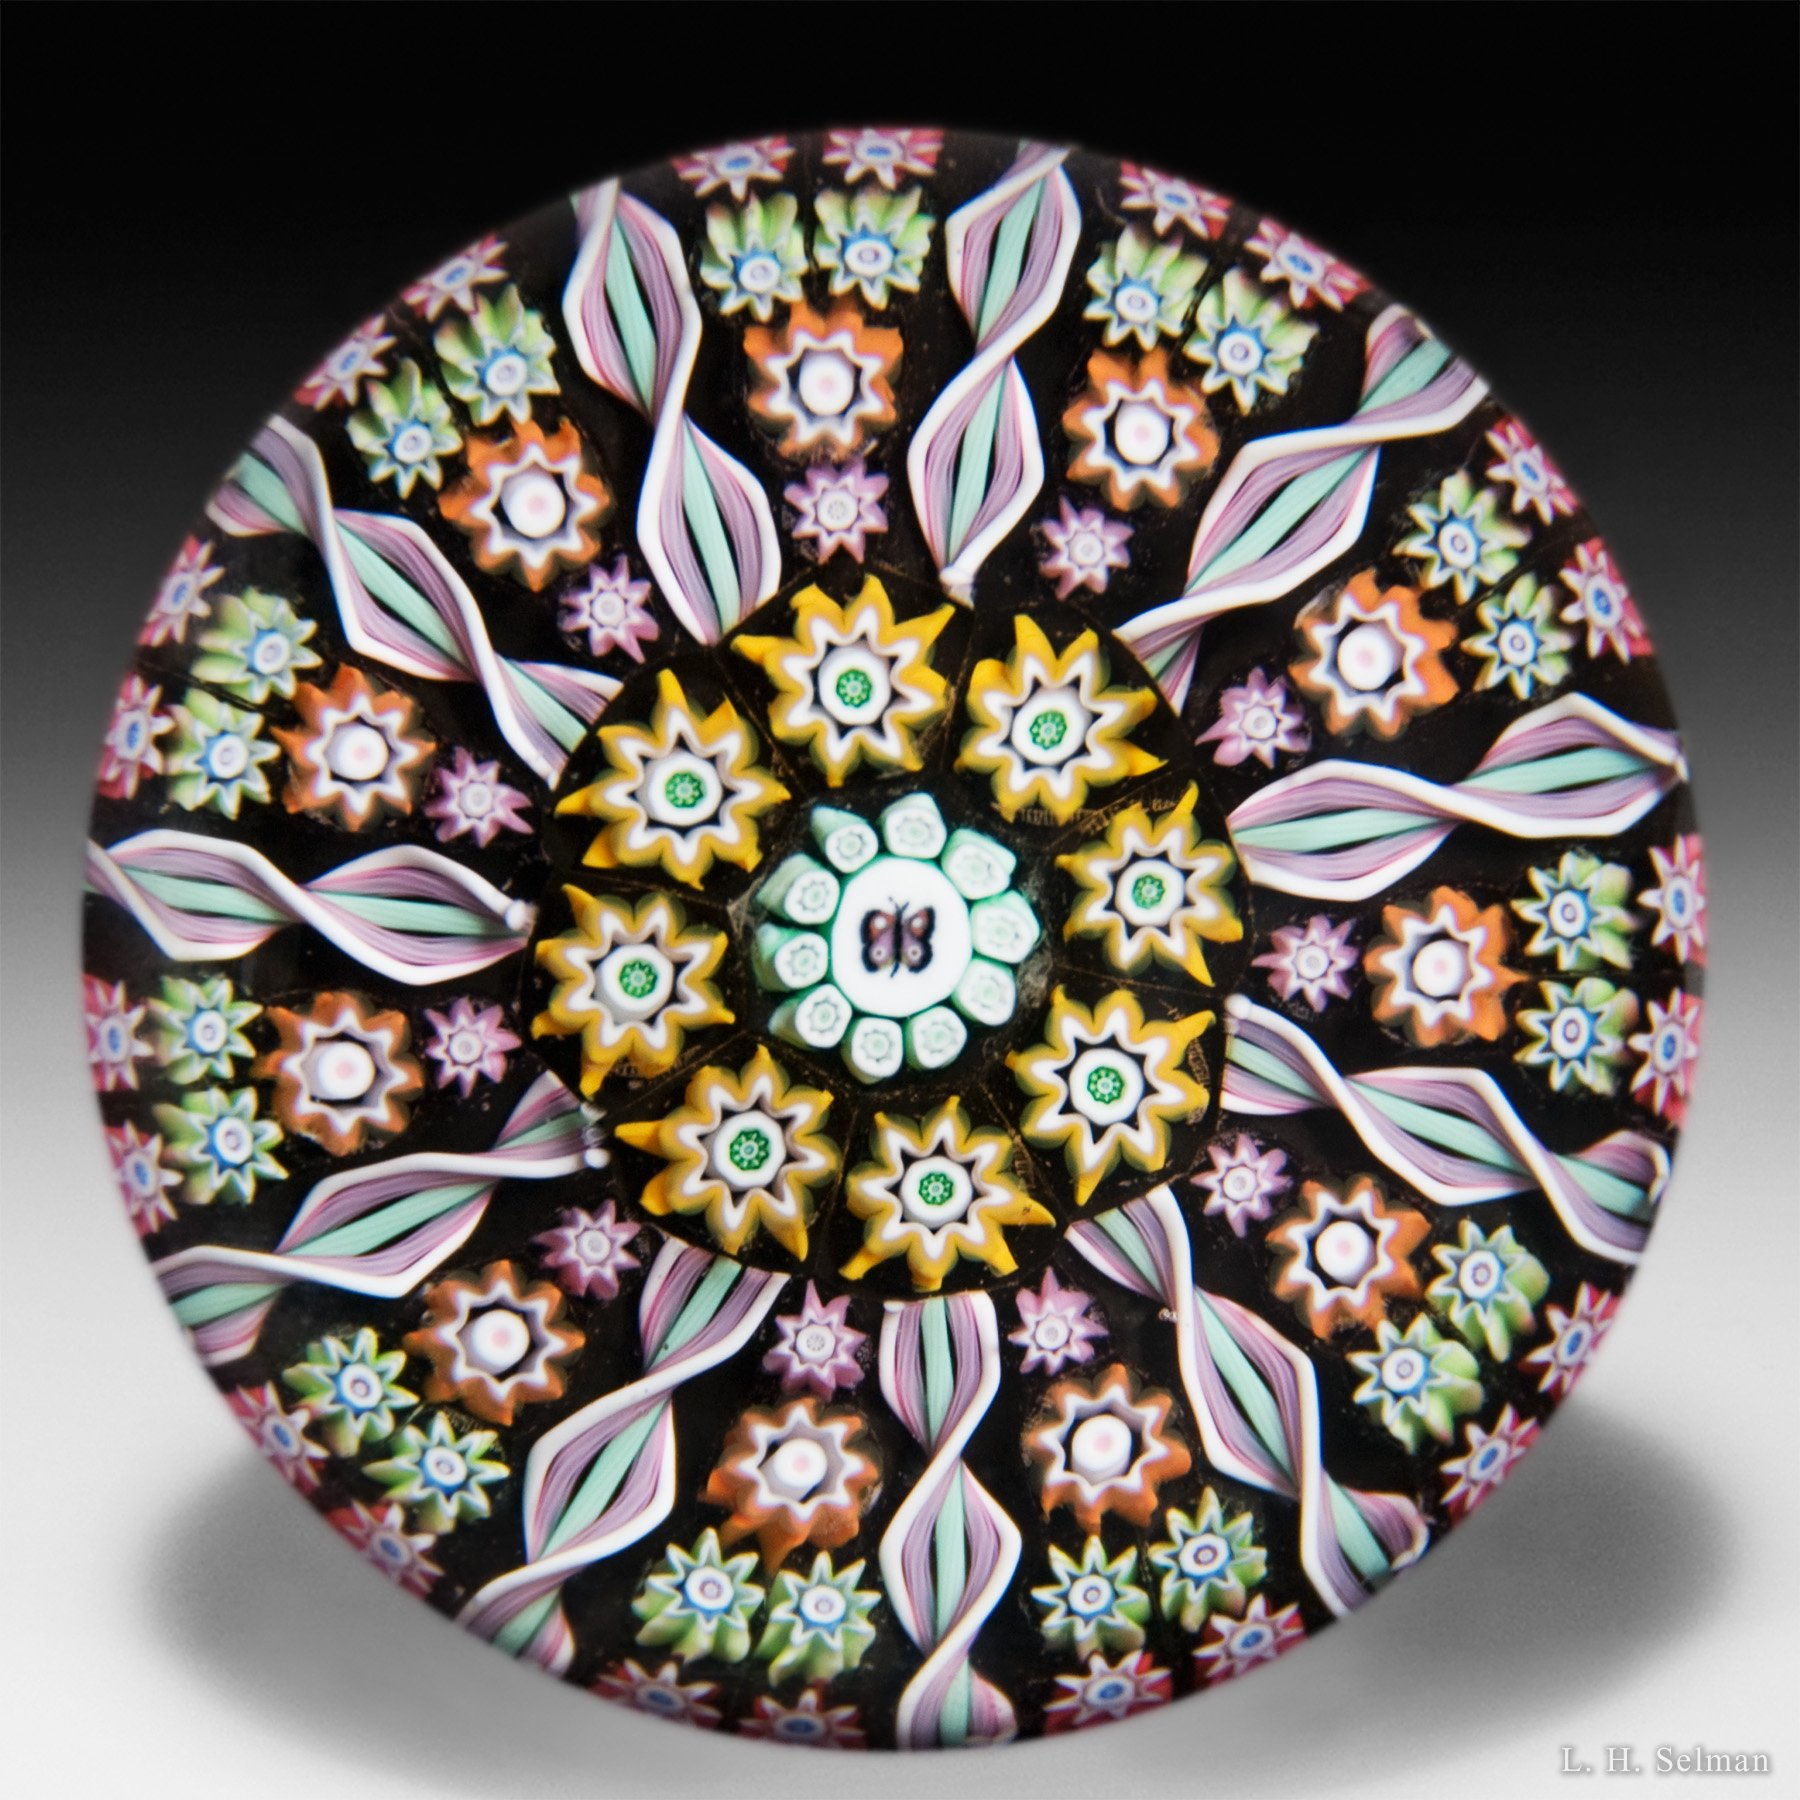 Perthshire Paperweights 1989-1997 butterfly cane and patterned medium millefiori glass glass paperweight.  by  Perthshire Paperweights